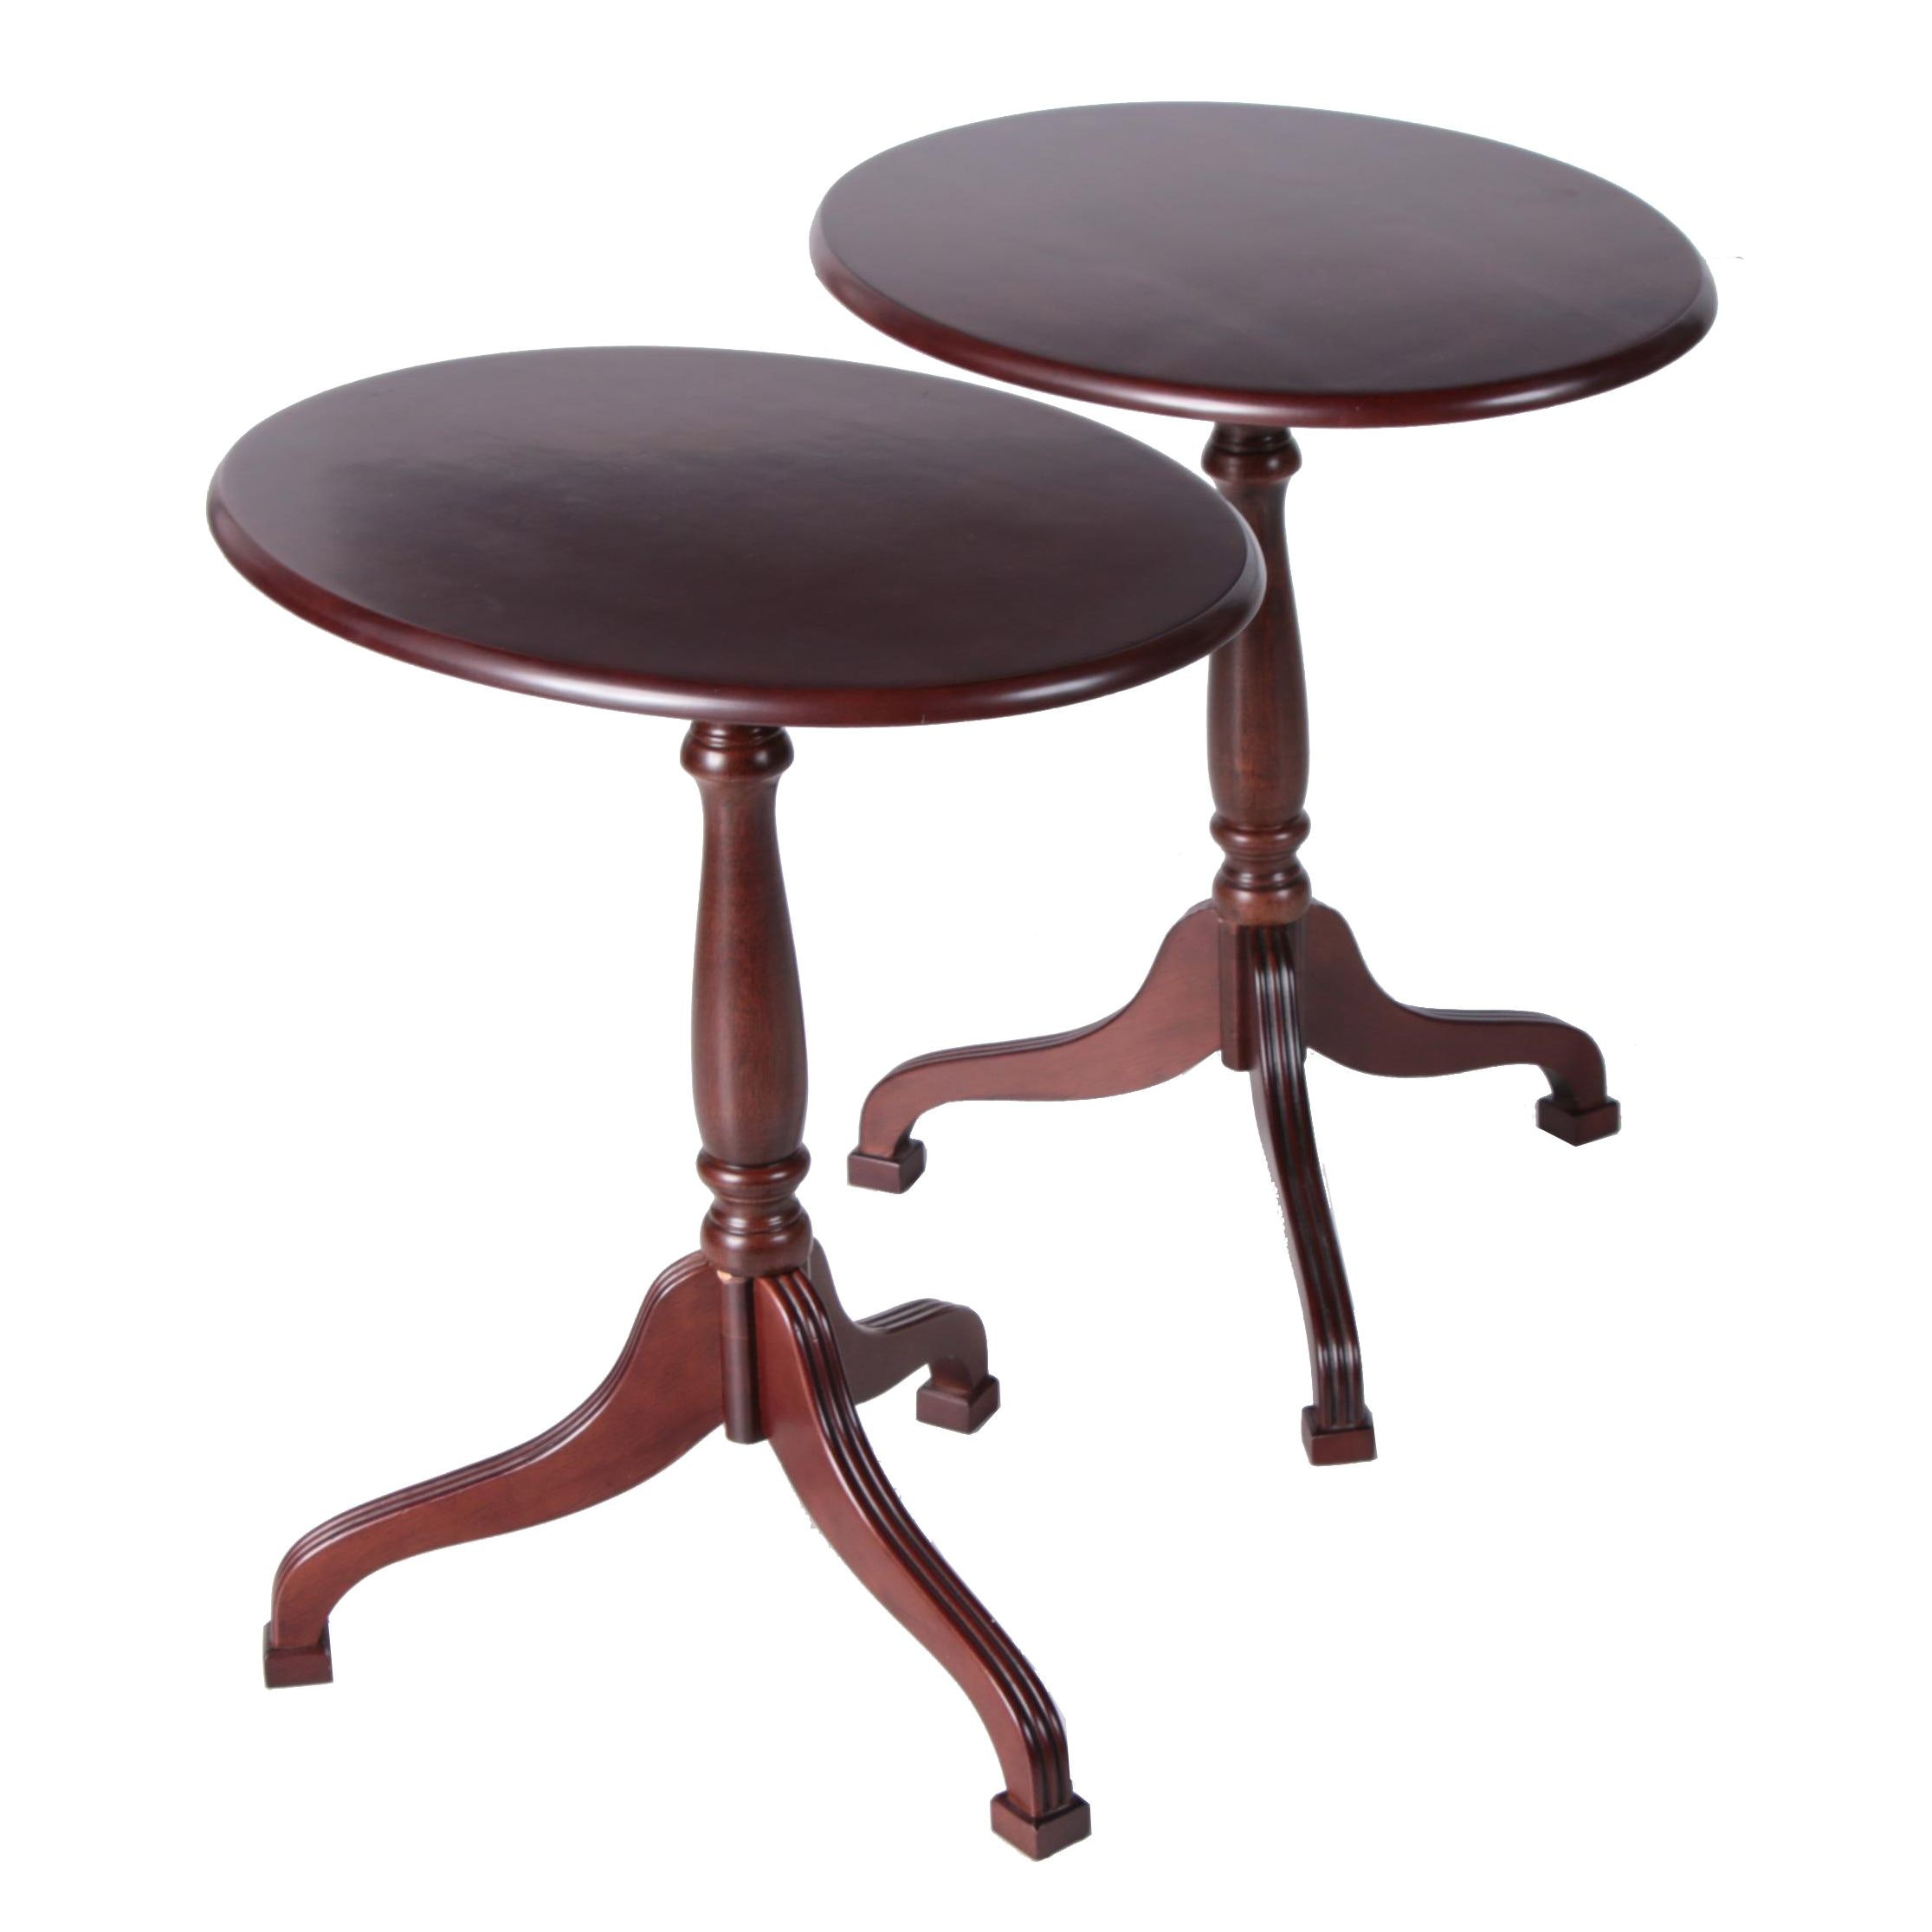 Federal Style Tilt Top Occasional Tables by The Bombay Company, 21st Century